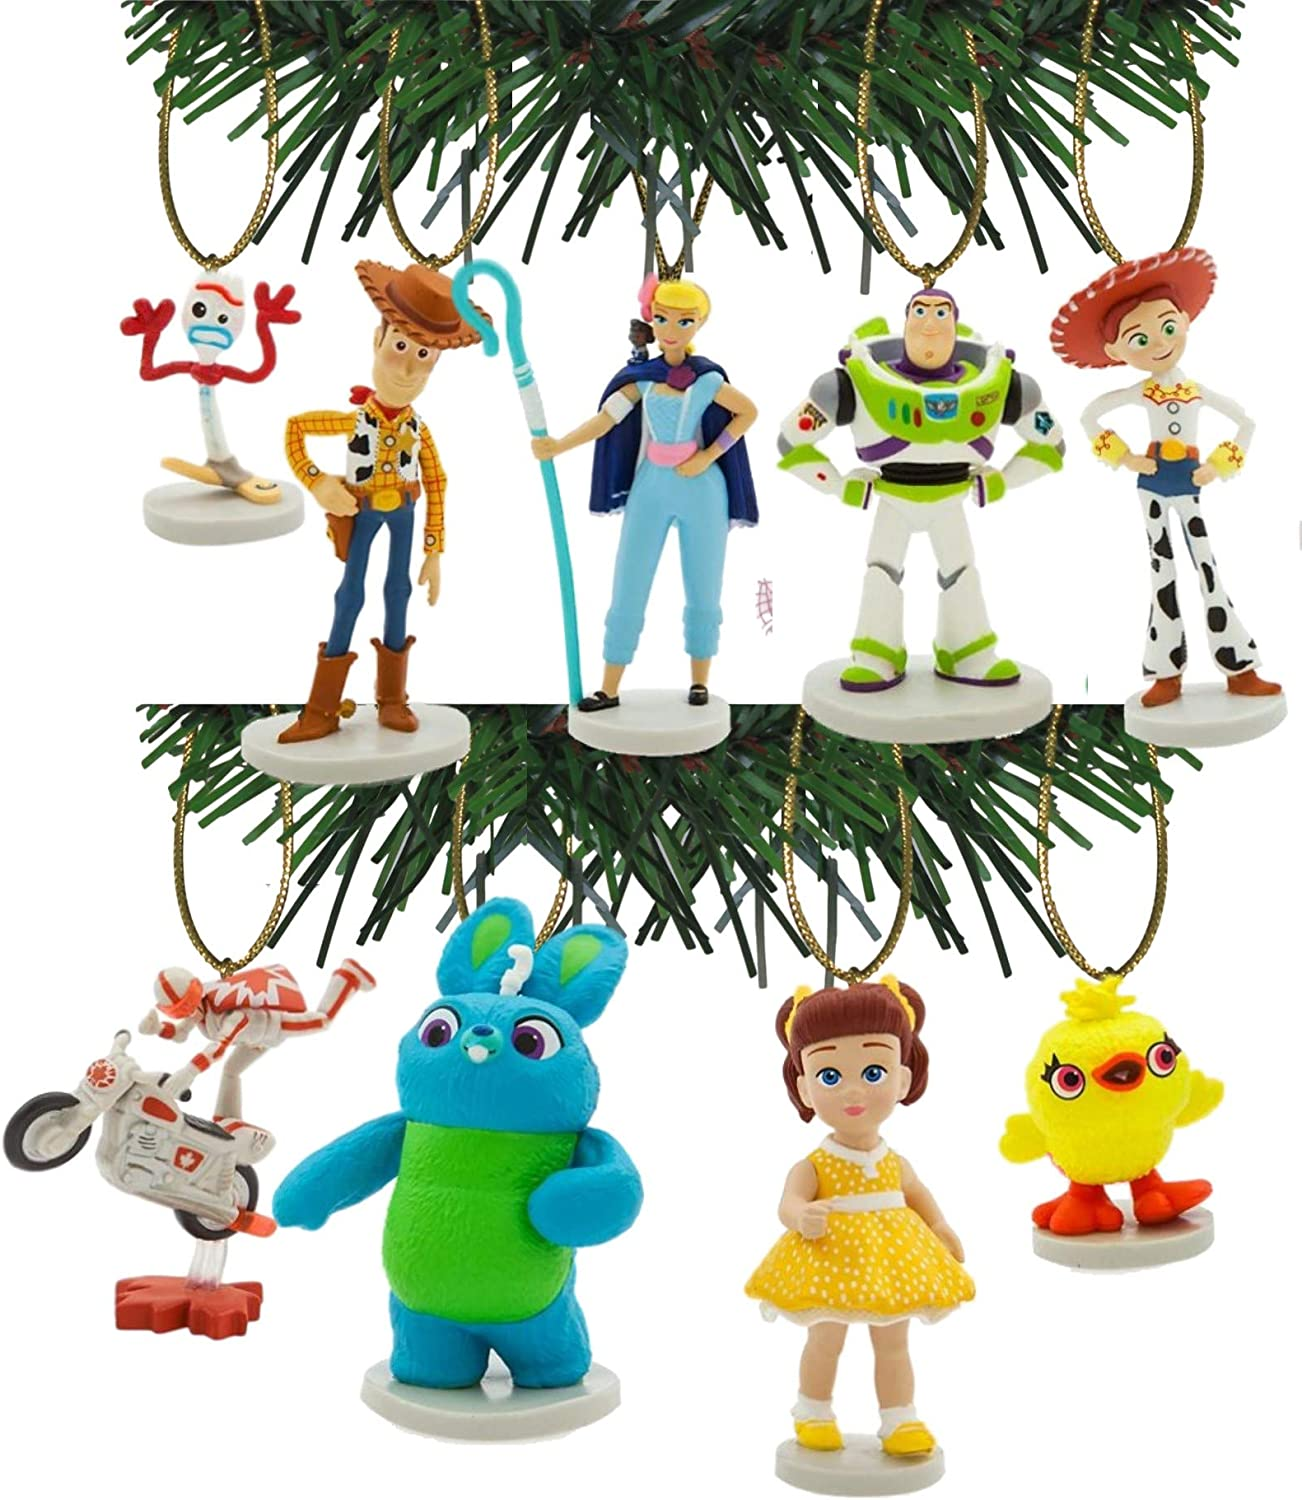 Characteristix Disney Pixar's Toy Story Set Ornament 4 New color of 9 Limited time for free shipping